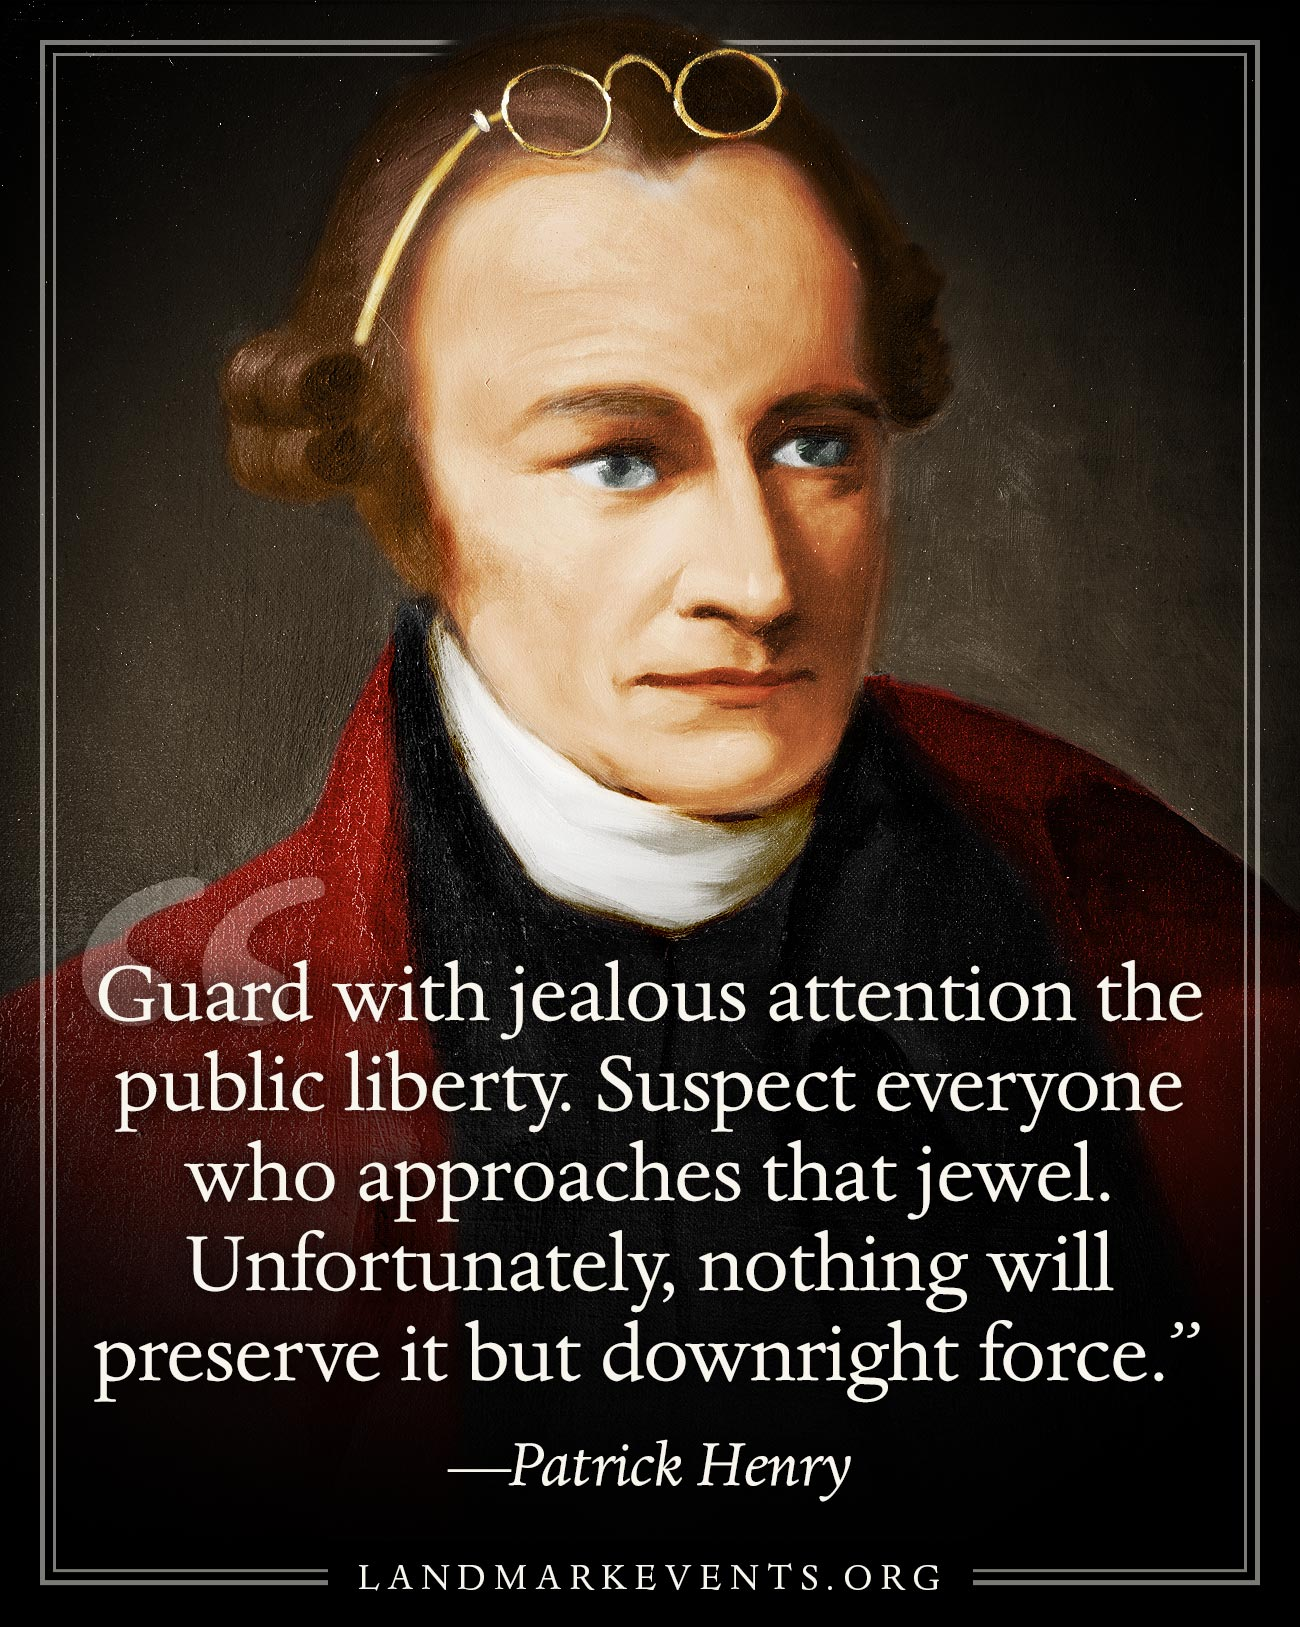 Voices from the Past - Patrick Henry on Guarding Liberty